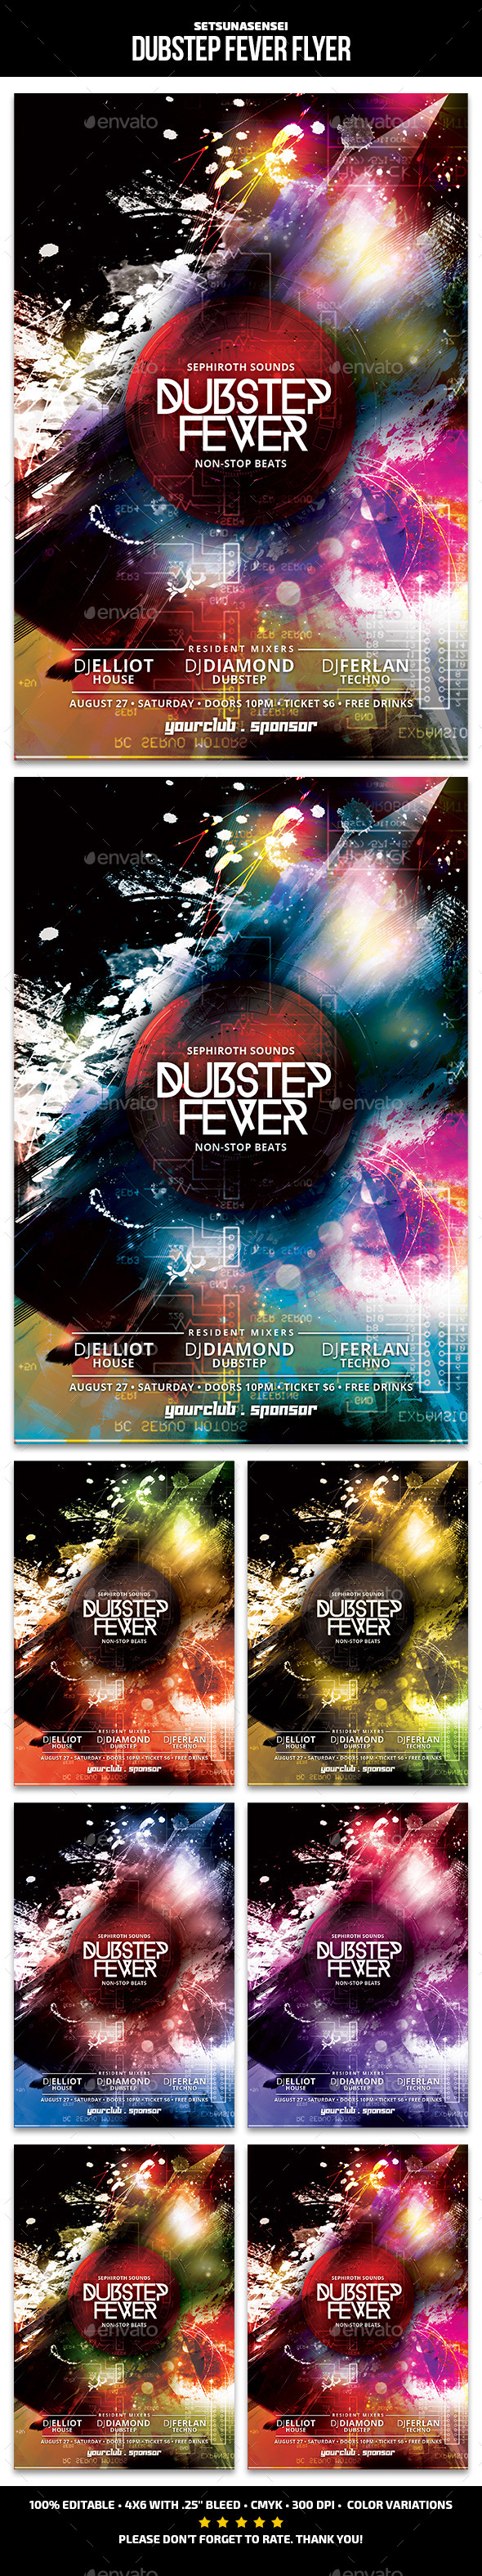 Dubstep Fever Flyer - Clubs & Parties Events